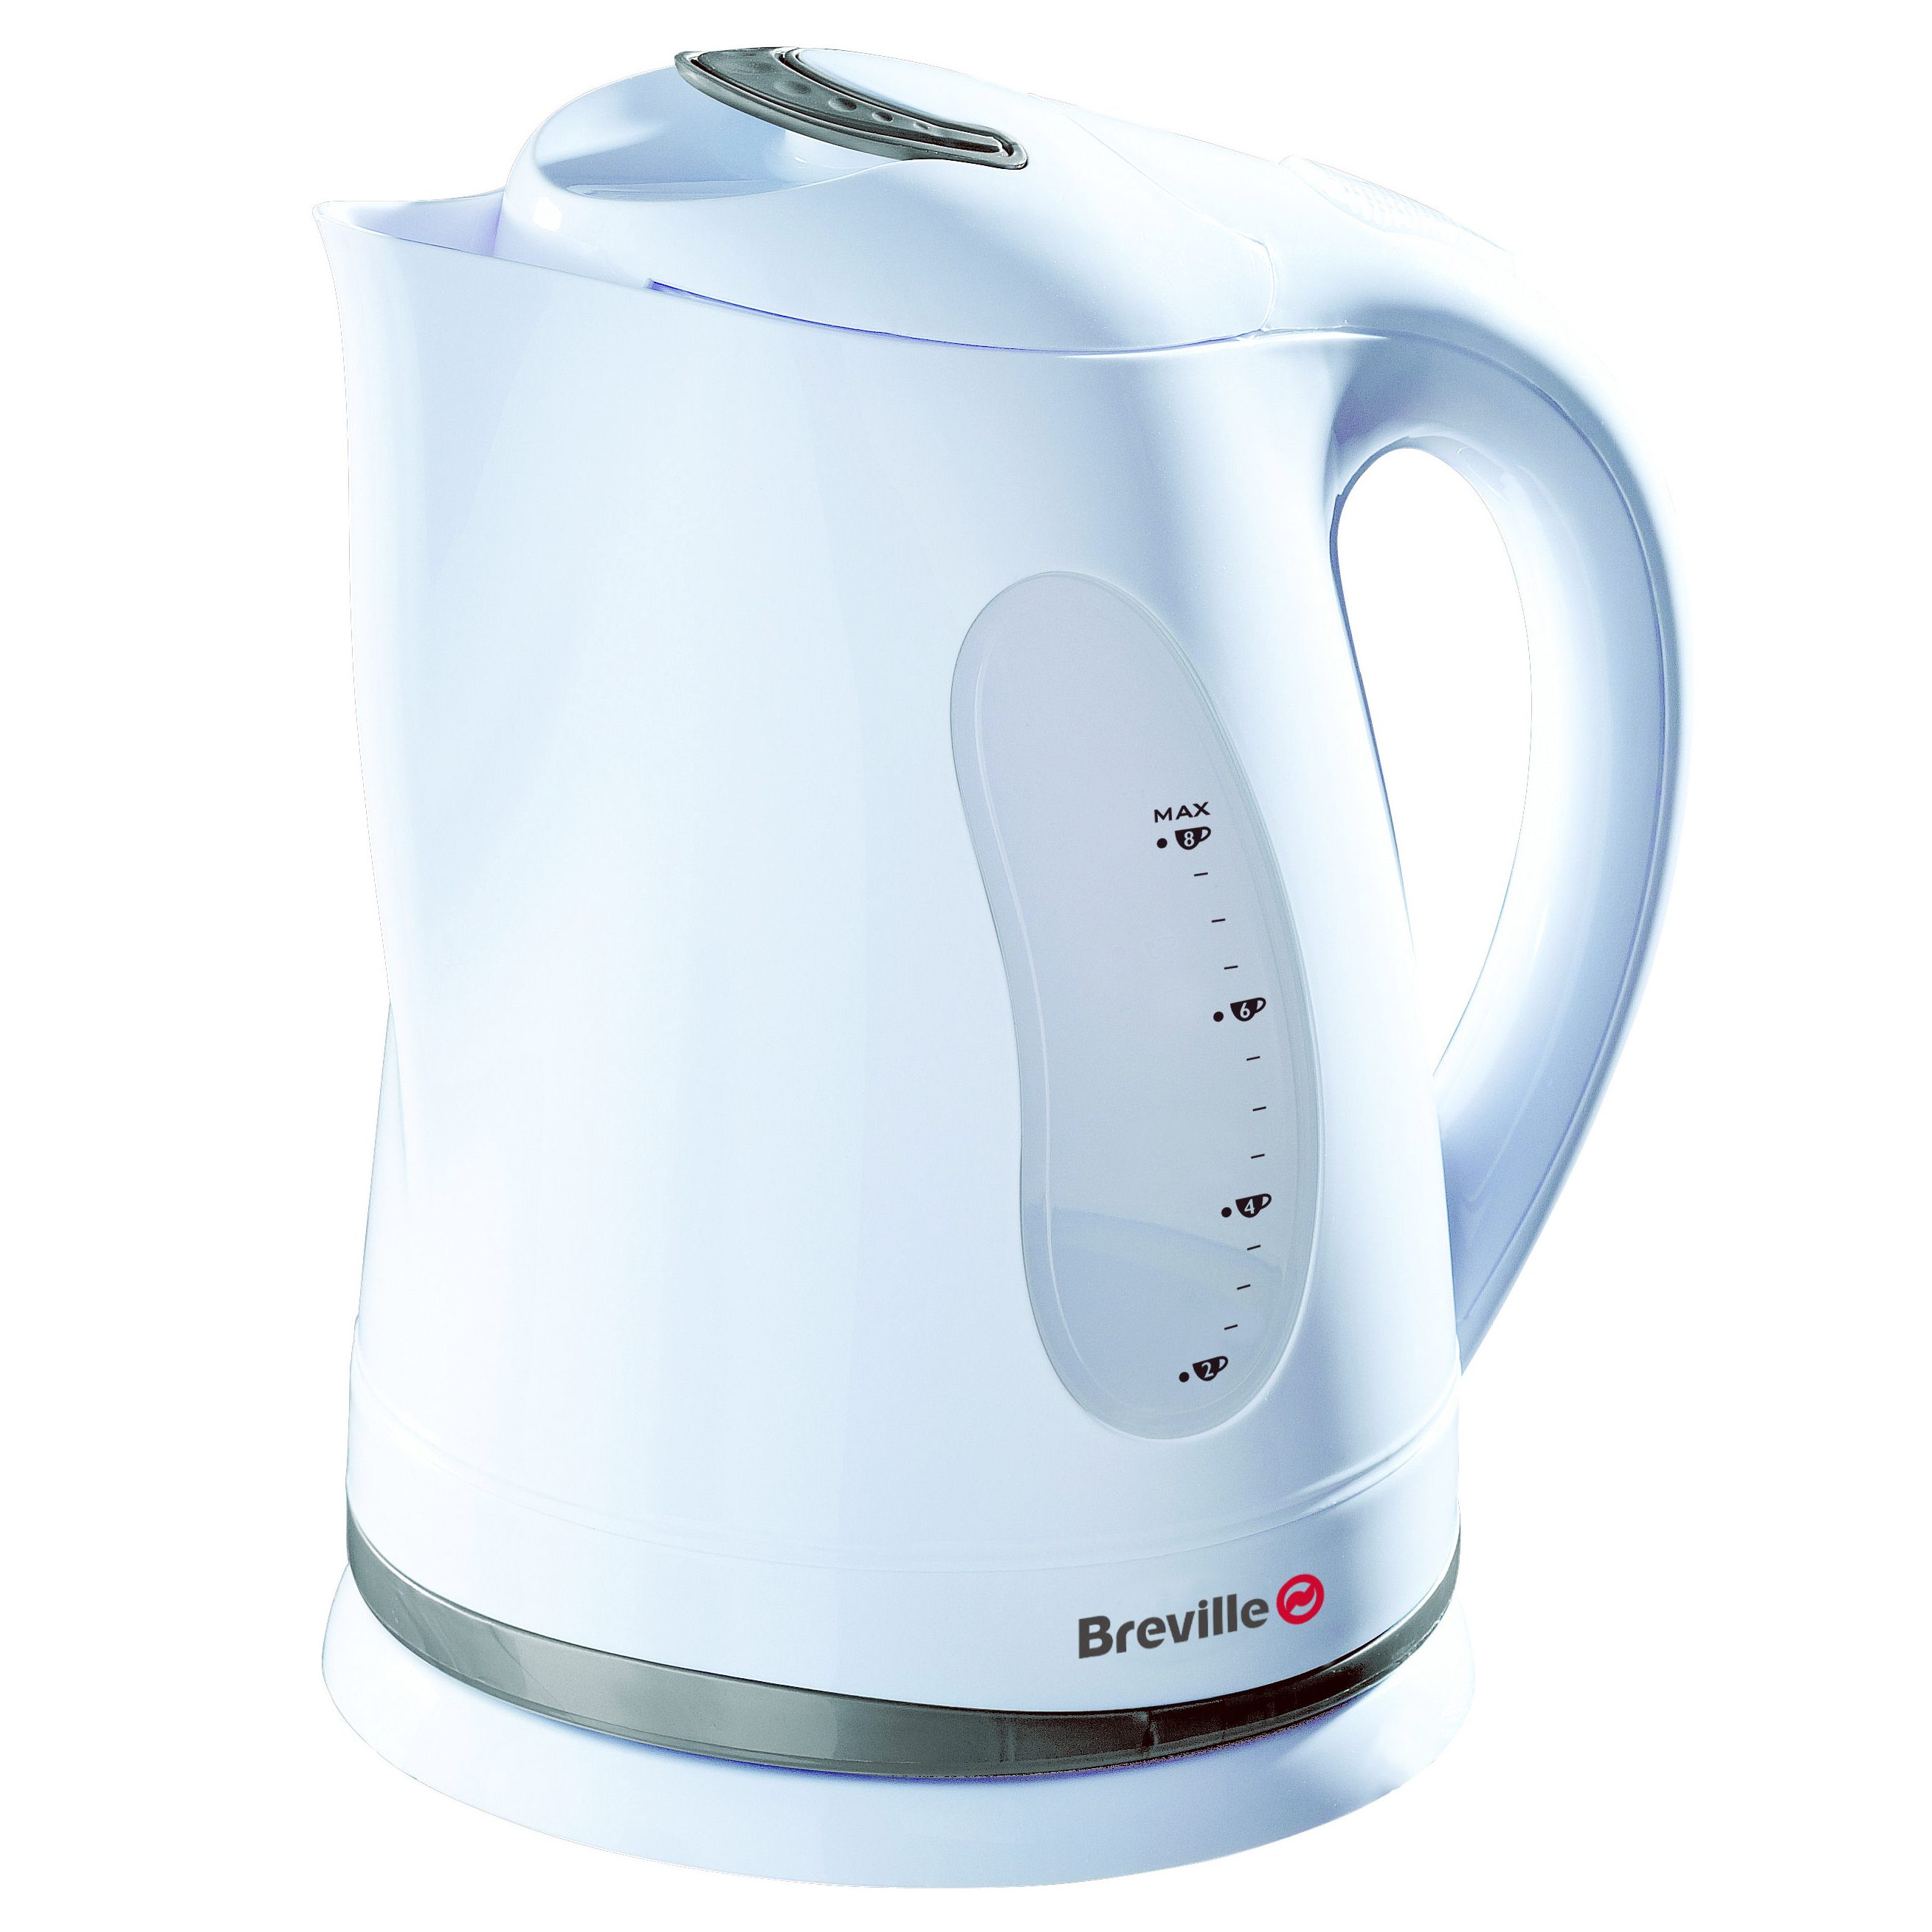 breville kettle cleaning instructions